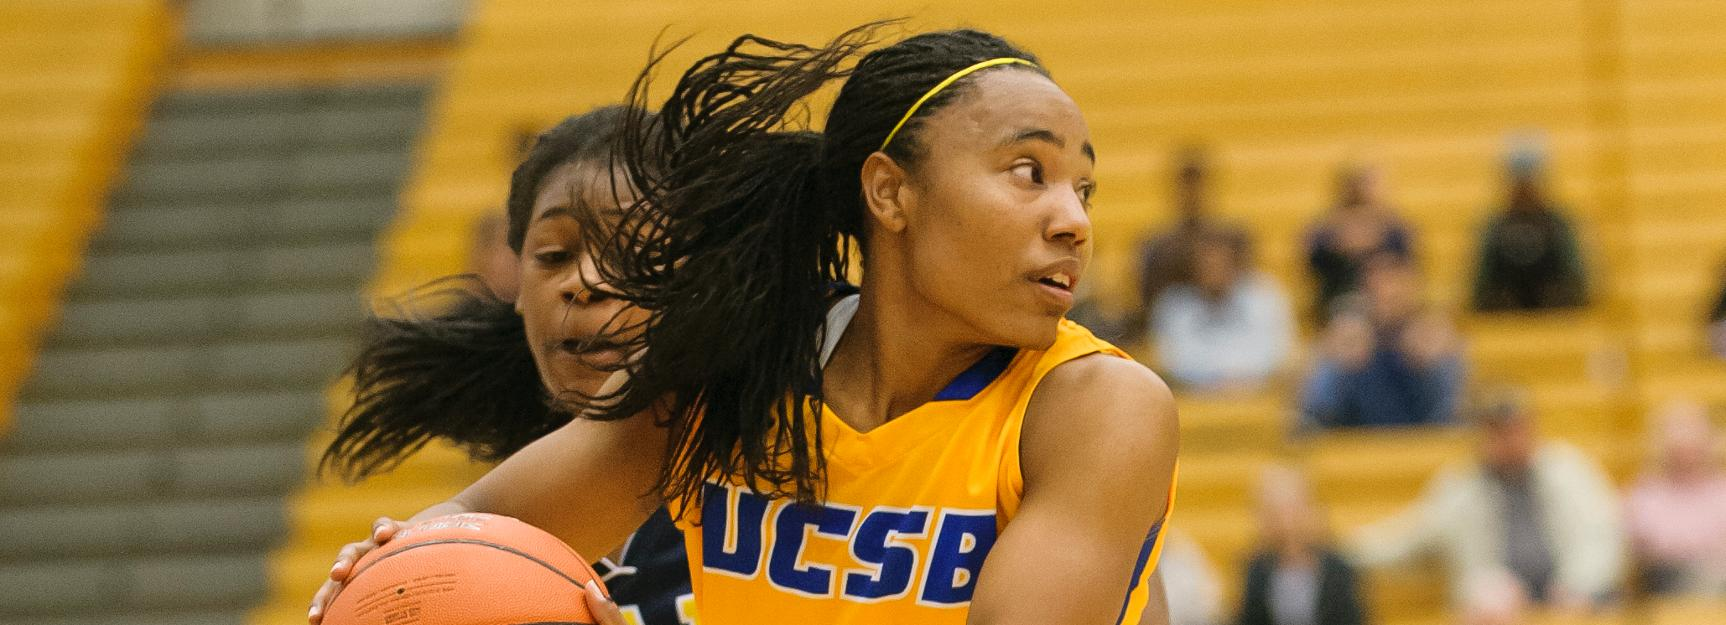 Gauchos Could Not Keep Up with CSUN in 64-46 Loss